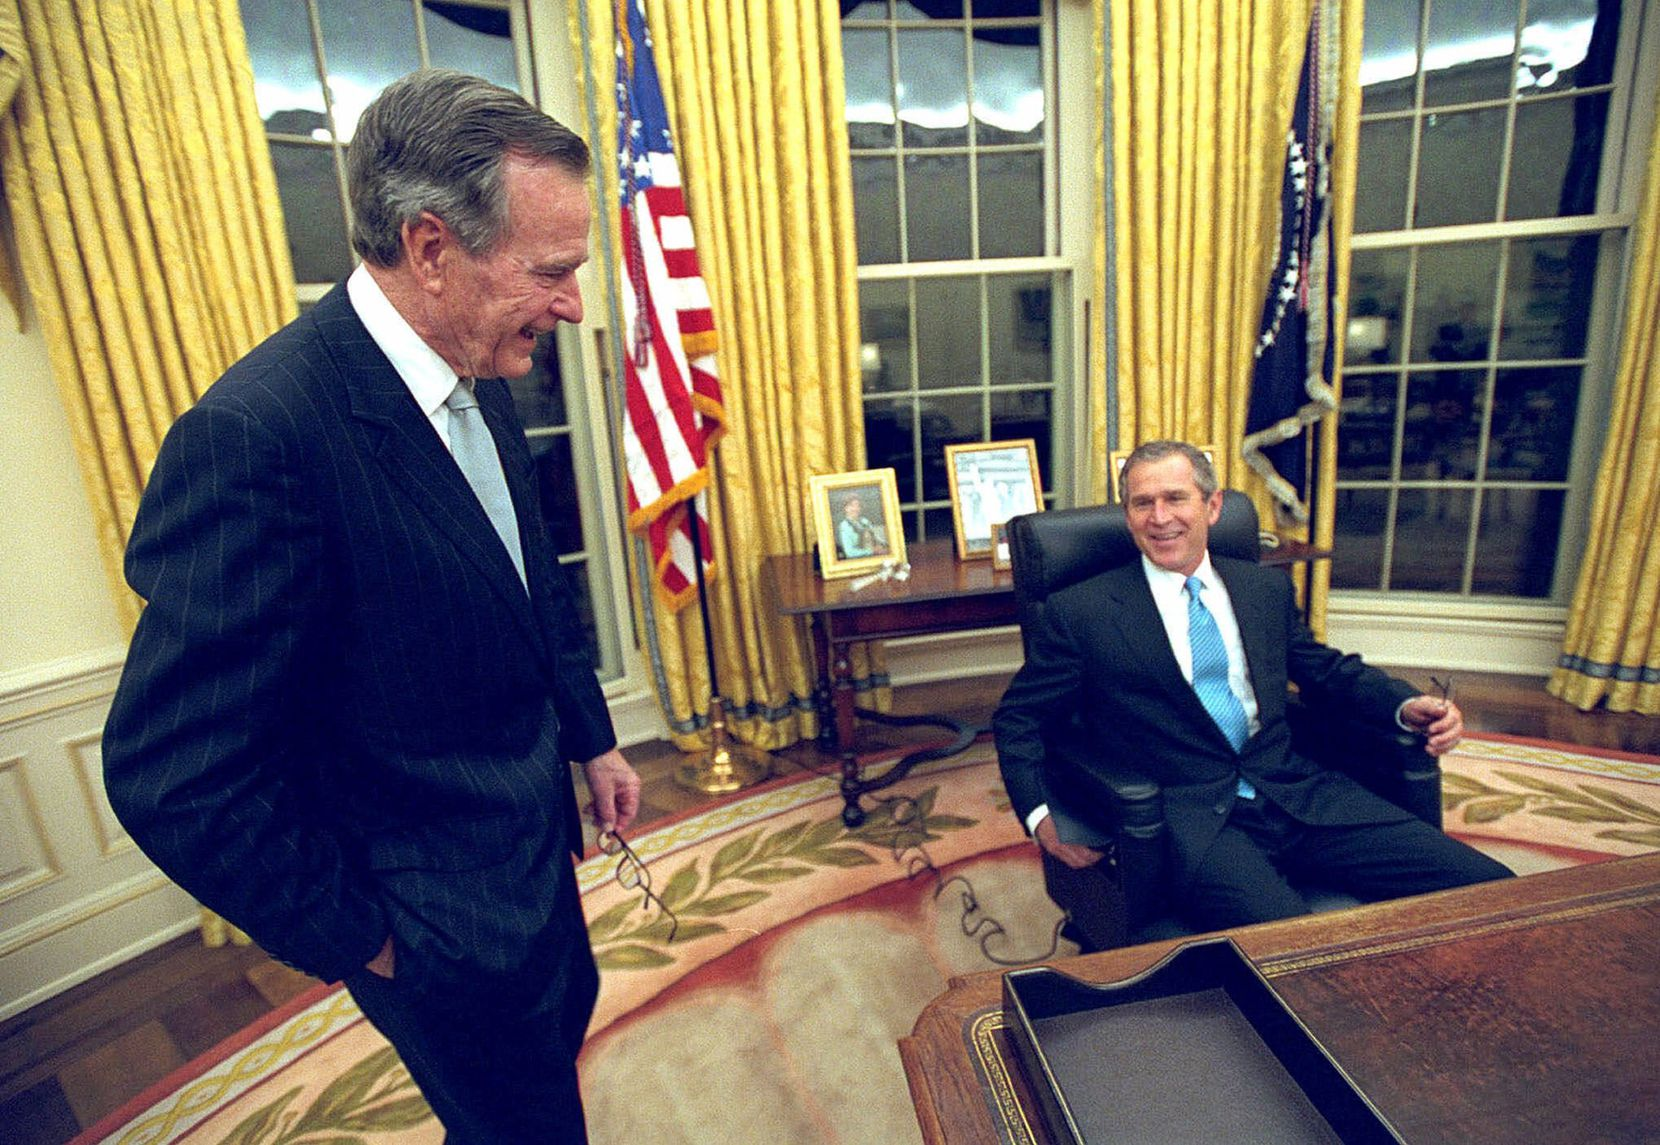 2001: President George W. Bush talks to his father, former President George H.W. Bush, as he sits at his desk in the Oval Office for the first time after the younger Bush's inauguration.